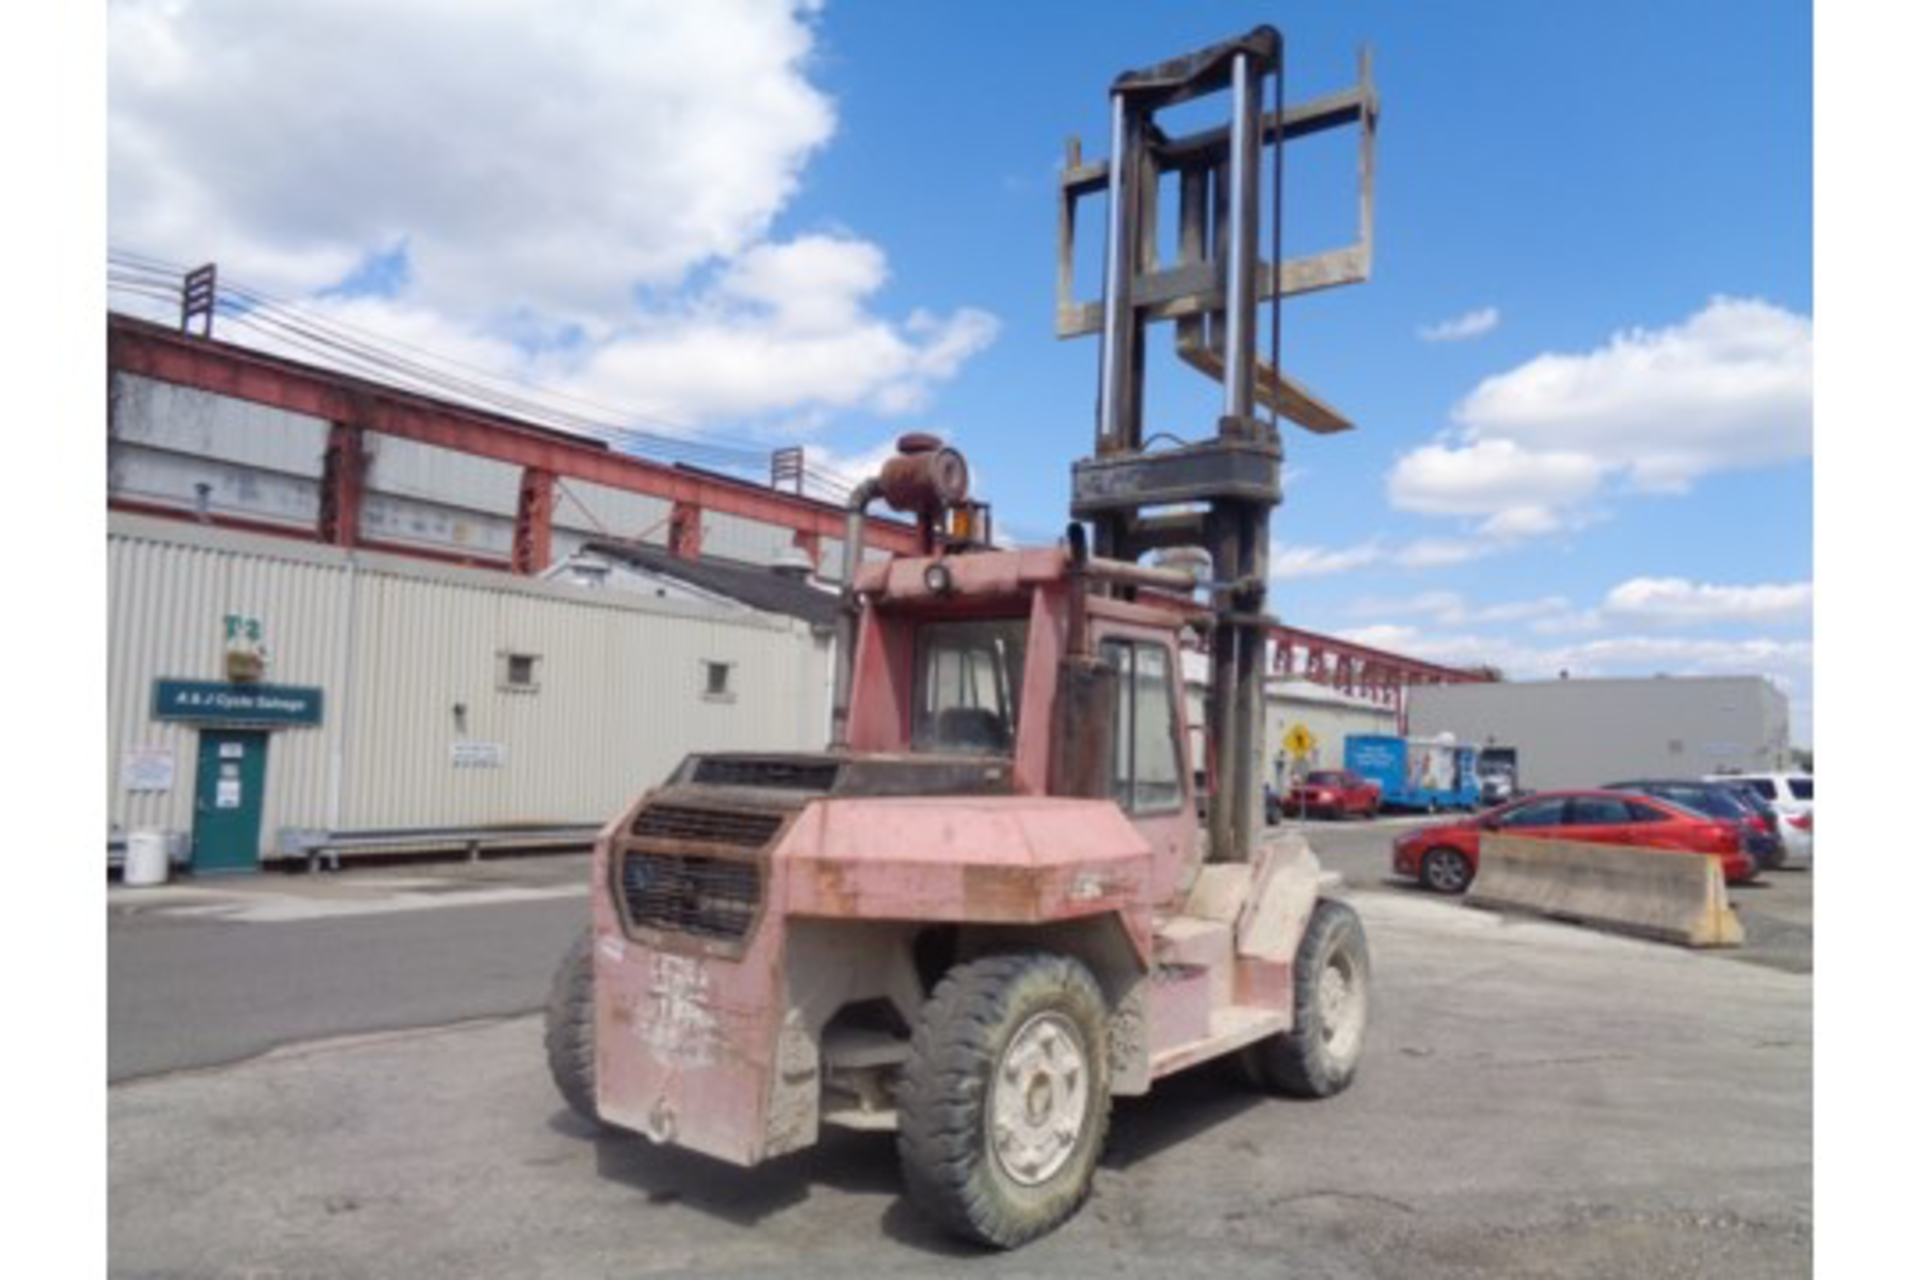 Taylor TE200S 20,000lb Forklift - Image 9 of 10